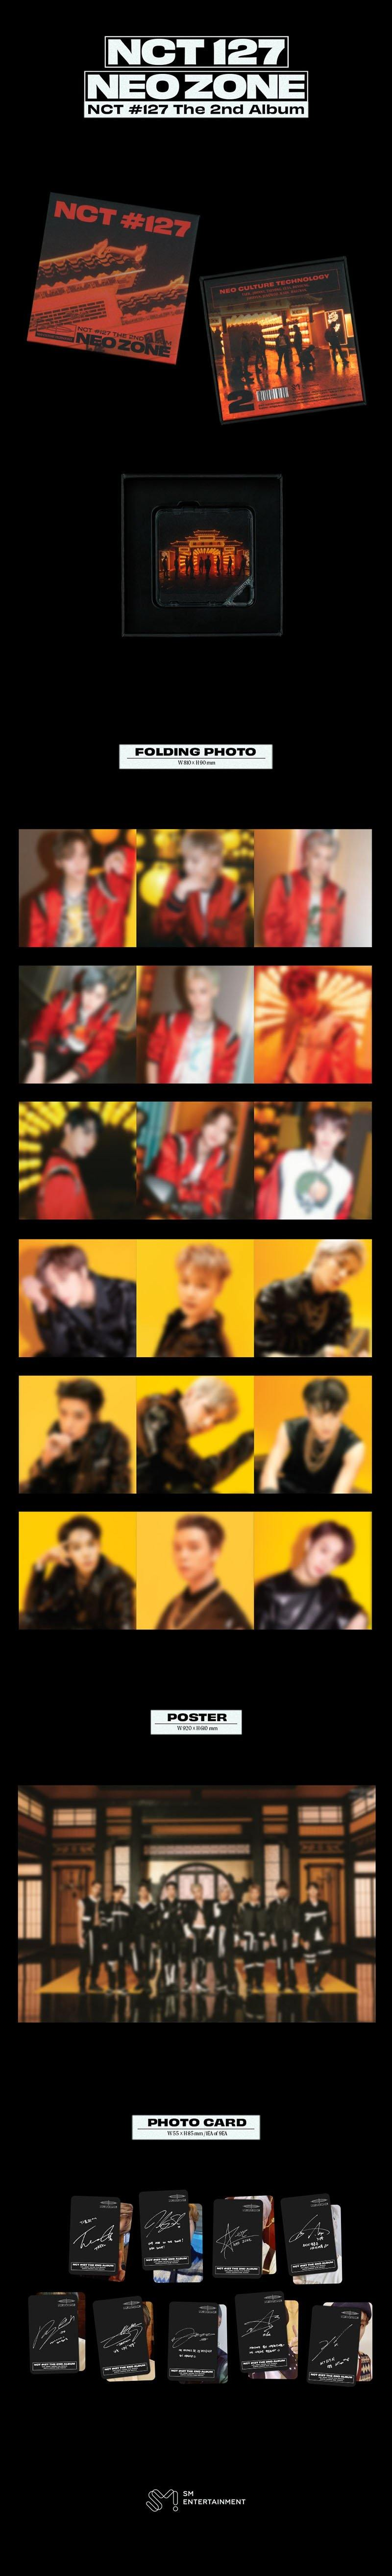 NCT 127- Neo Zone- Kit Album